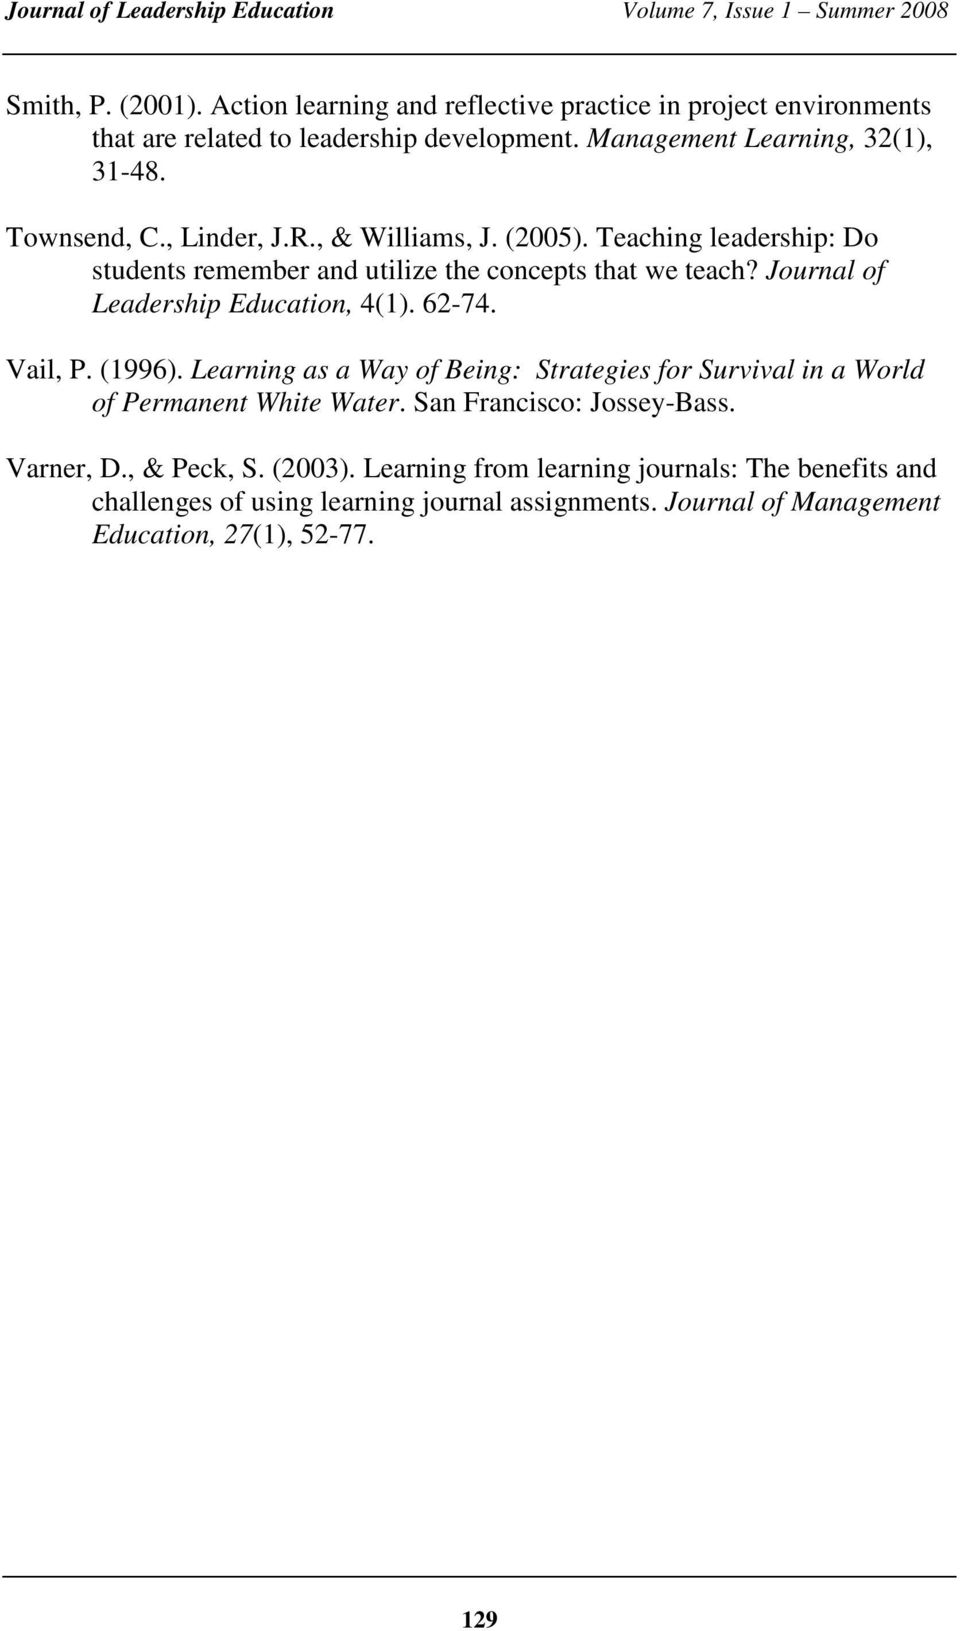 Journal of Leadership Education, 4(1). 62-74. Vail, P. (1996). Learning as a Way of Being: Strategies for Survival in a World of Permanent White Water.